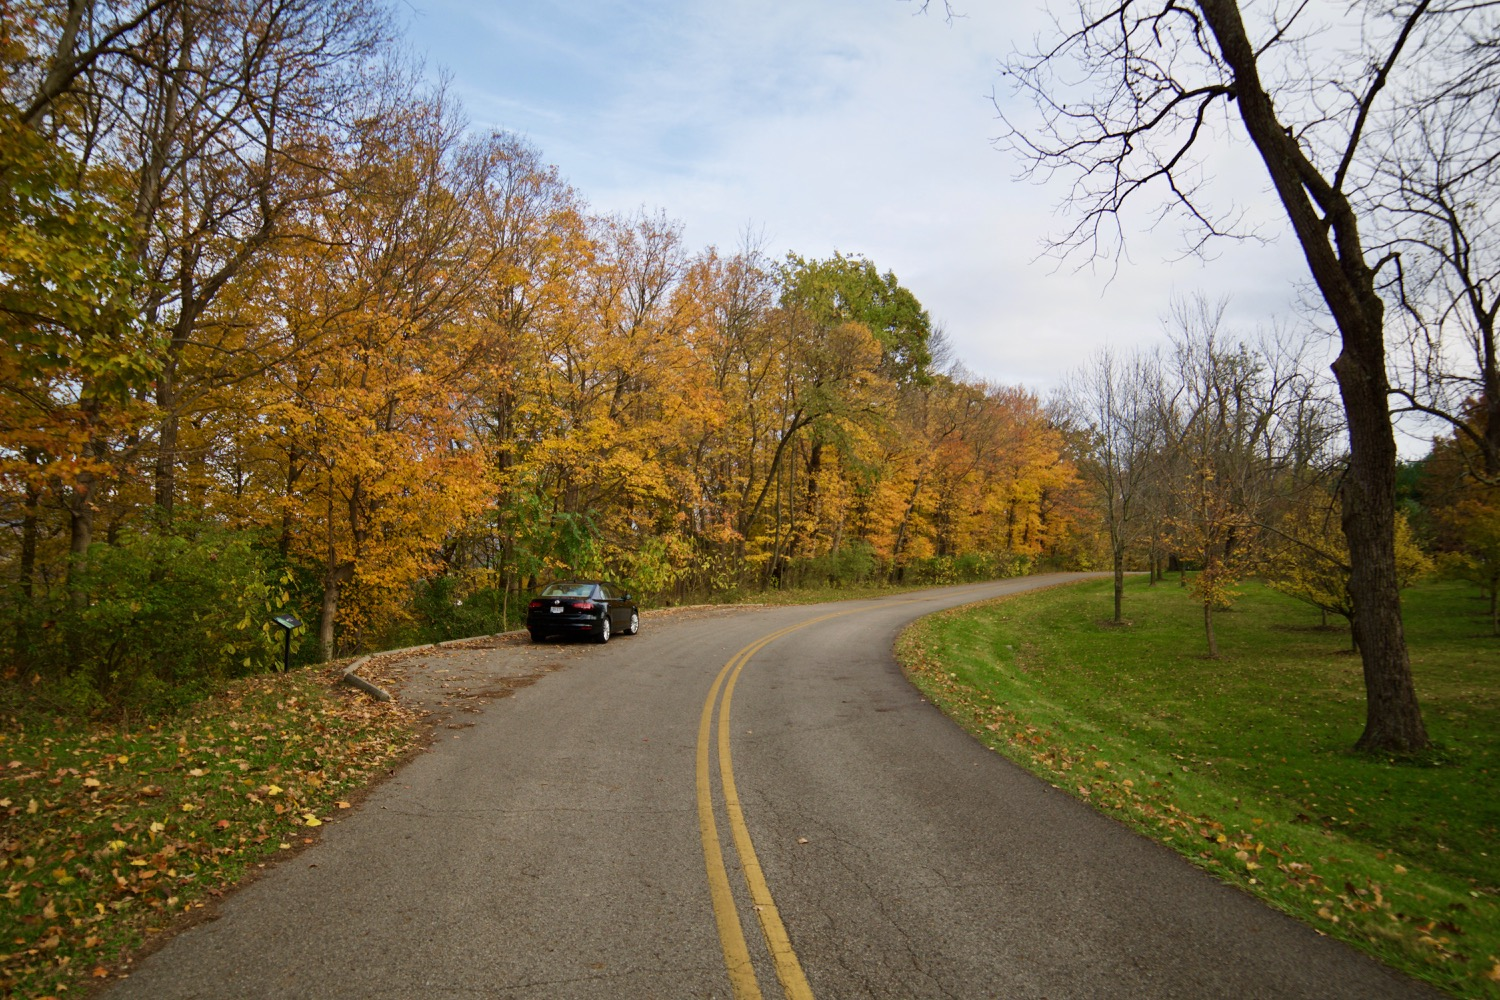 From its charming small towns to its delicious Chillicothe restaurants, Ross County offers everything an intrepid leaf-peeper could want in a fall day trip. The Native American earthworks are a humbling sight too. / Image: Brian Planalp<p></p>